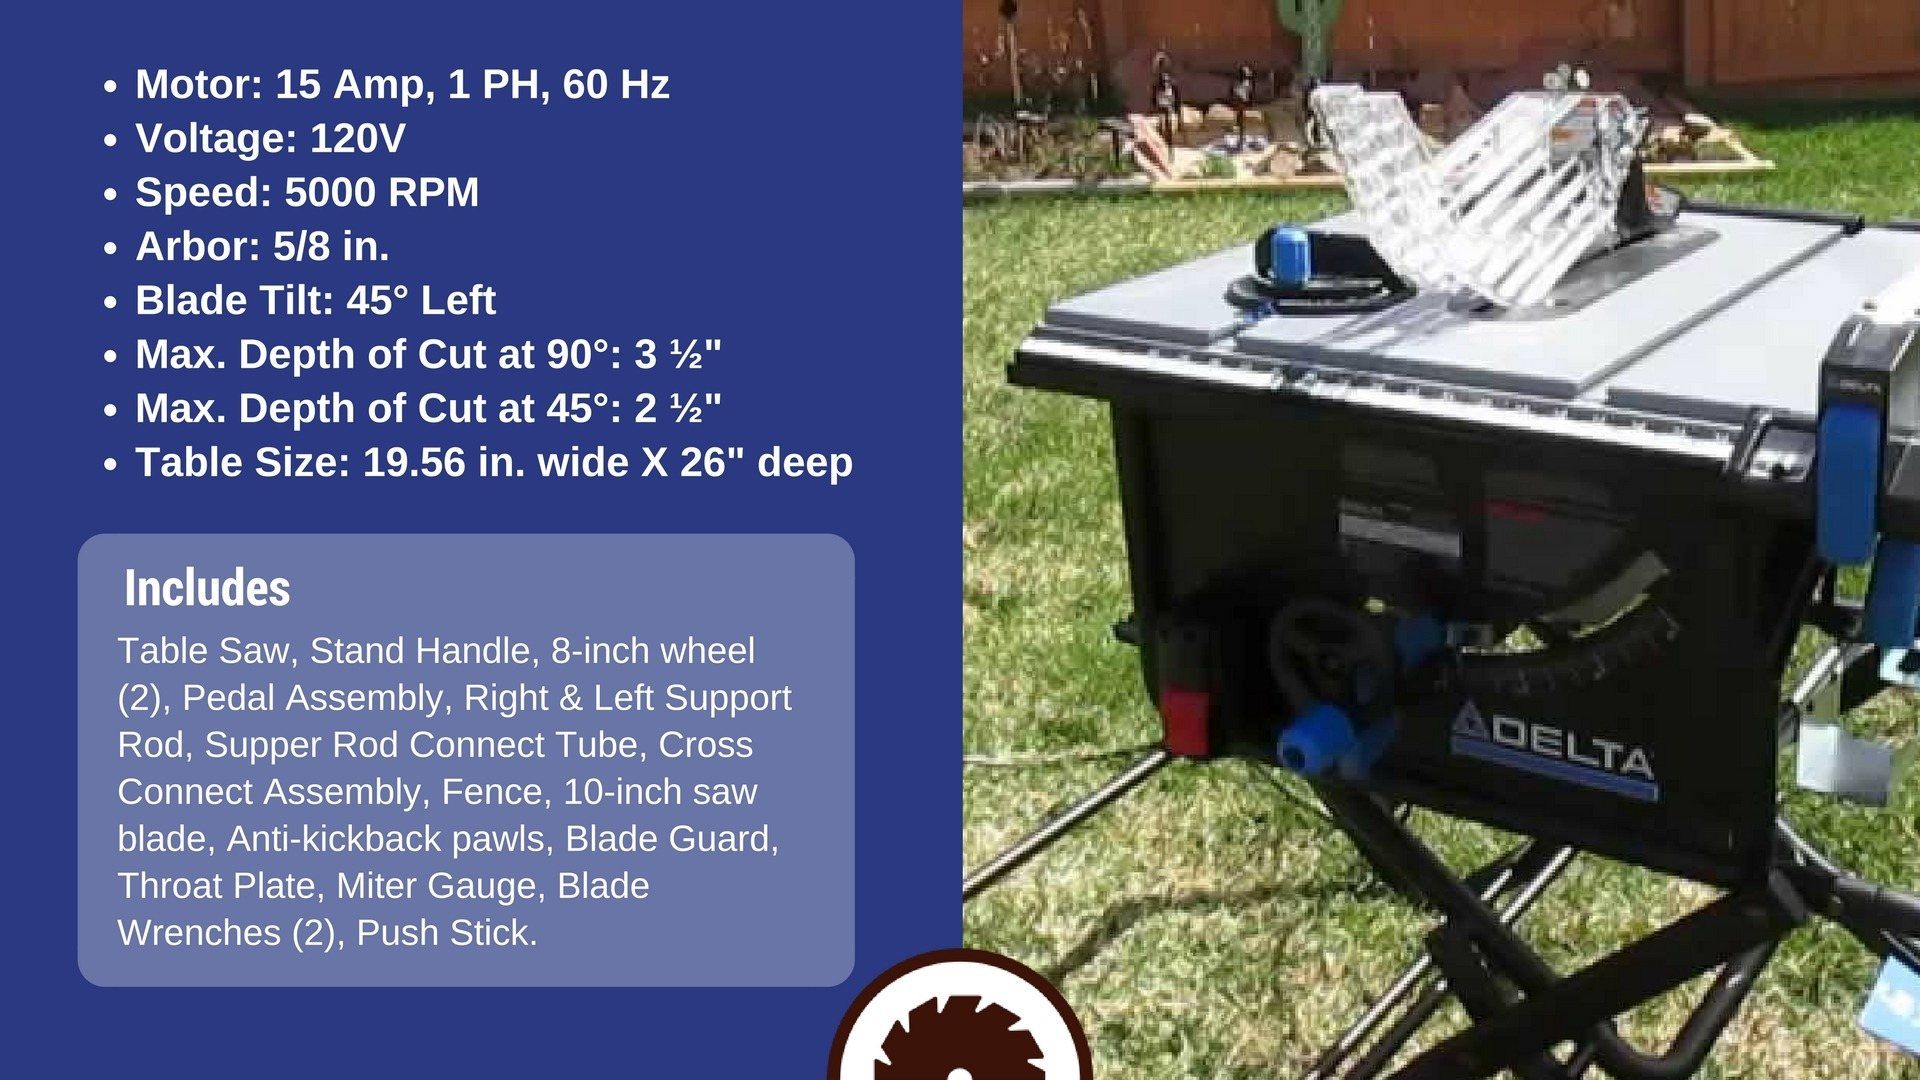 Delta Table Saw Specs